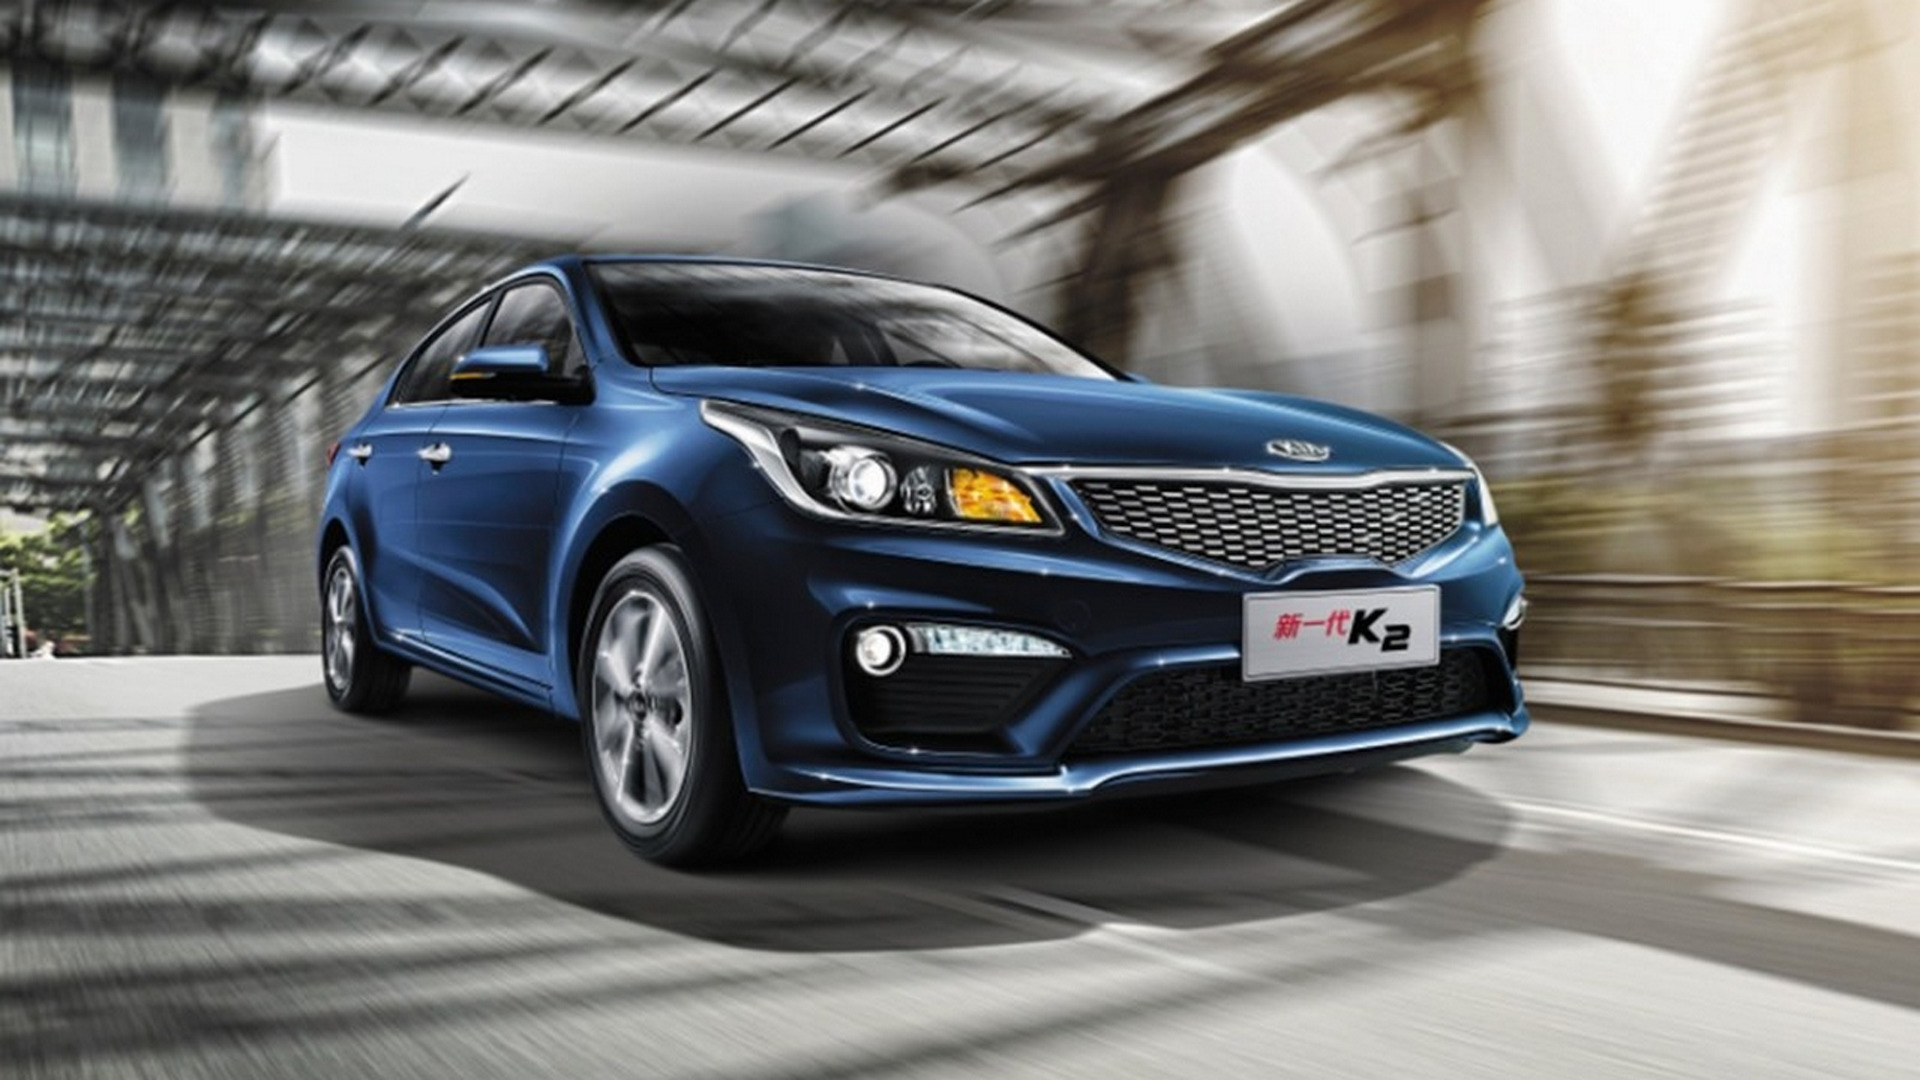 2018 kia rio sedan previewed in china by the new k2. Black Bedroom Furniture Sets. Home Design Ideas